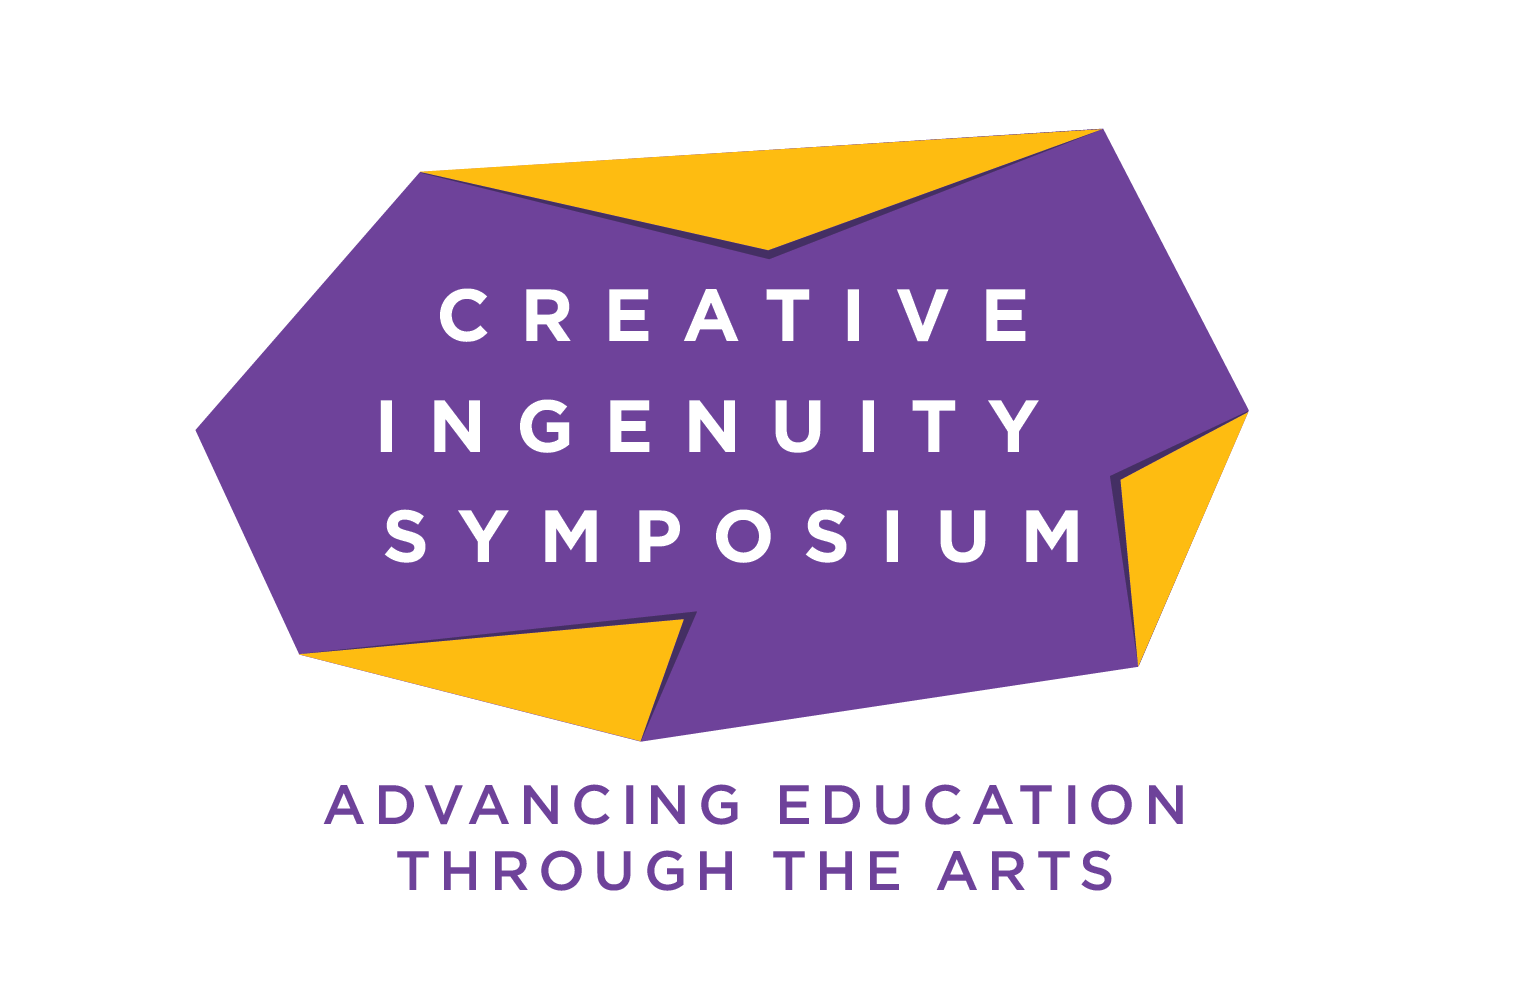 Creative Ingenuity Symposium: Advancing Education Through the Arts